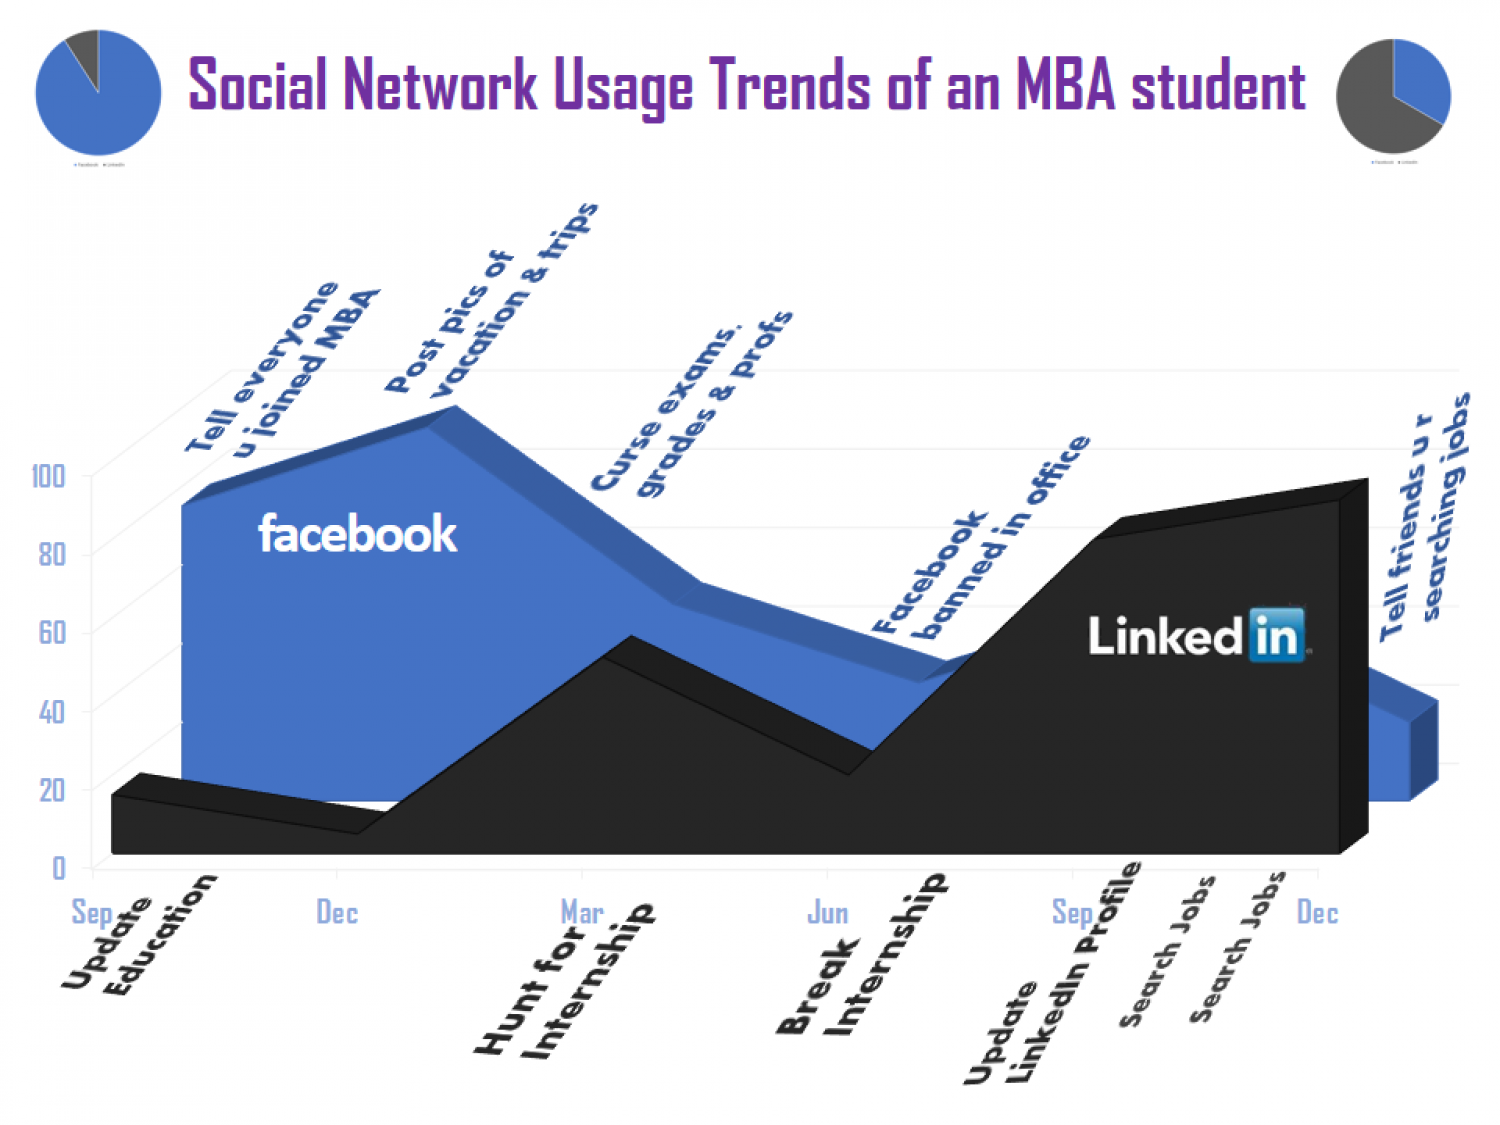 Social Network Usage Trends of an MBA student Infographic